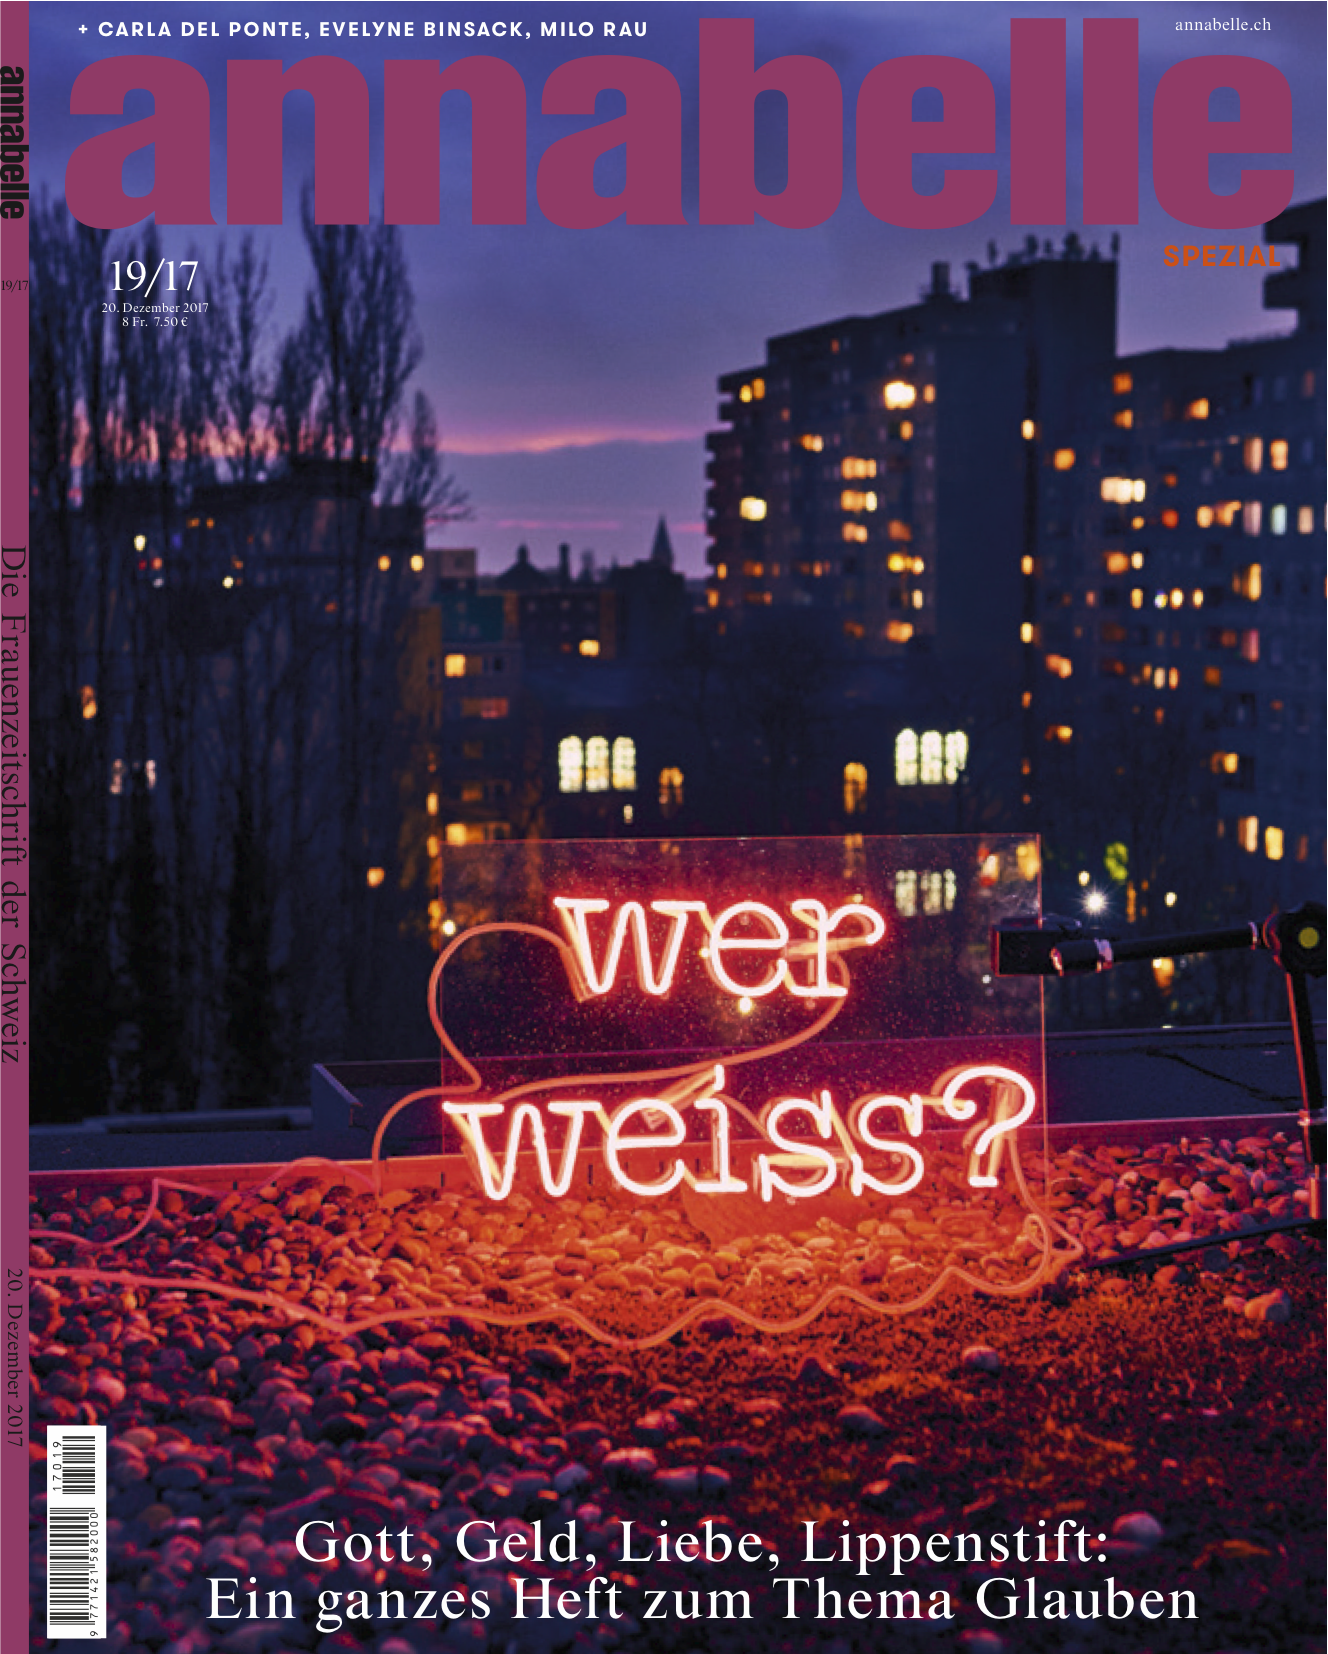 an1719_001_ums_cover.png